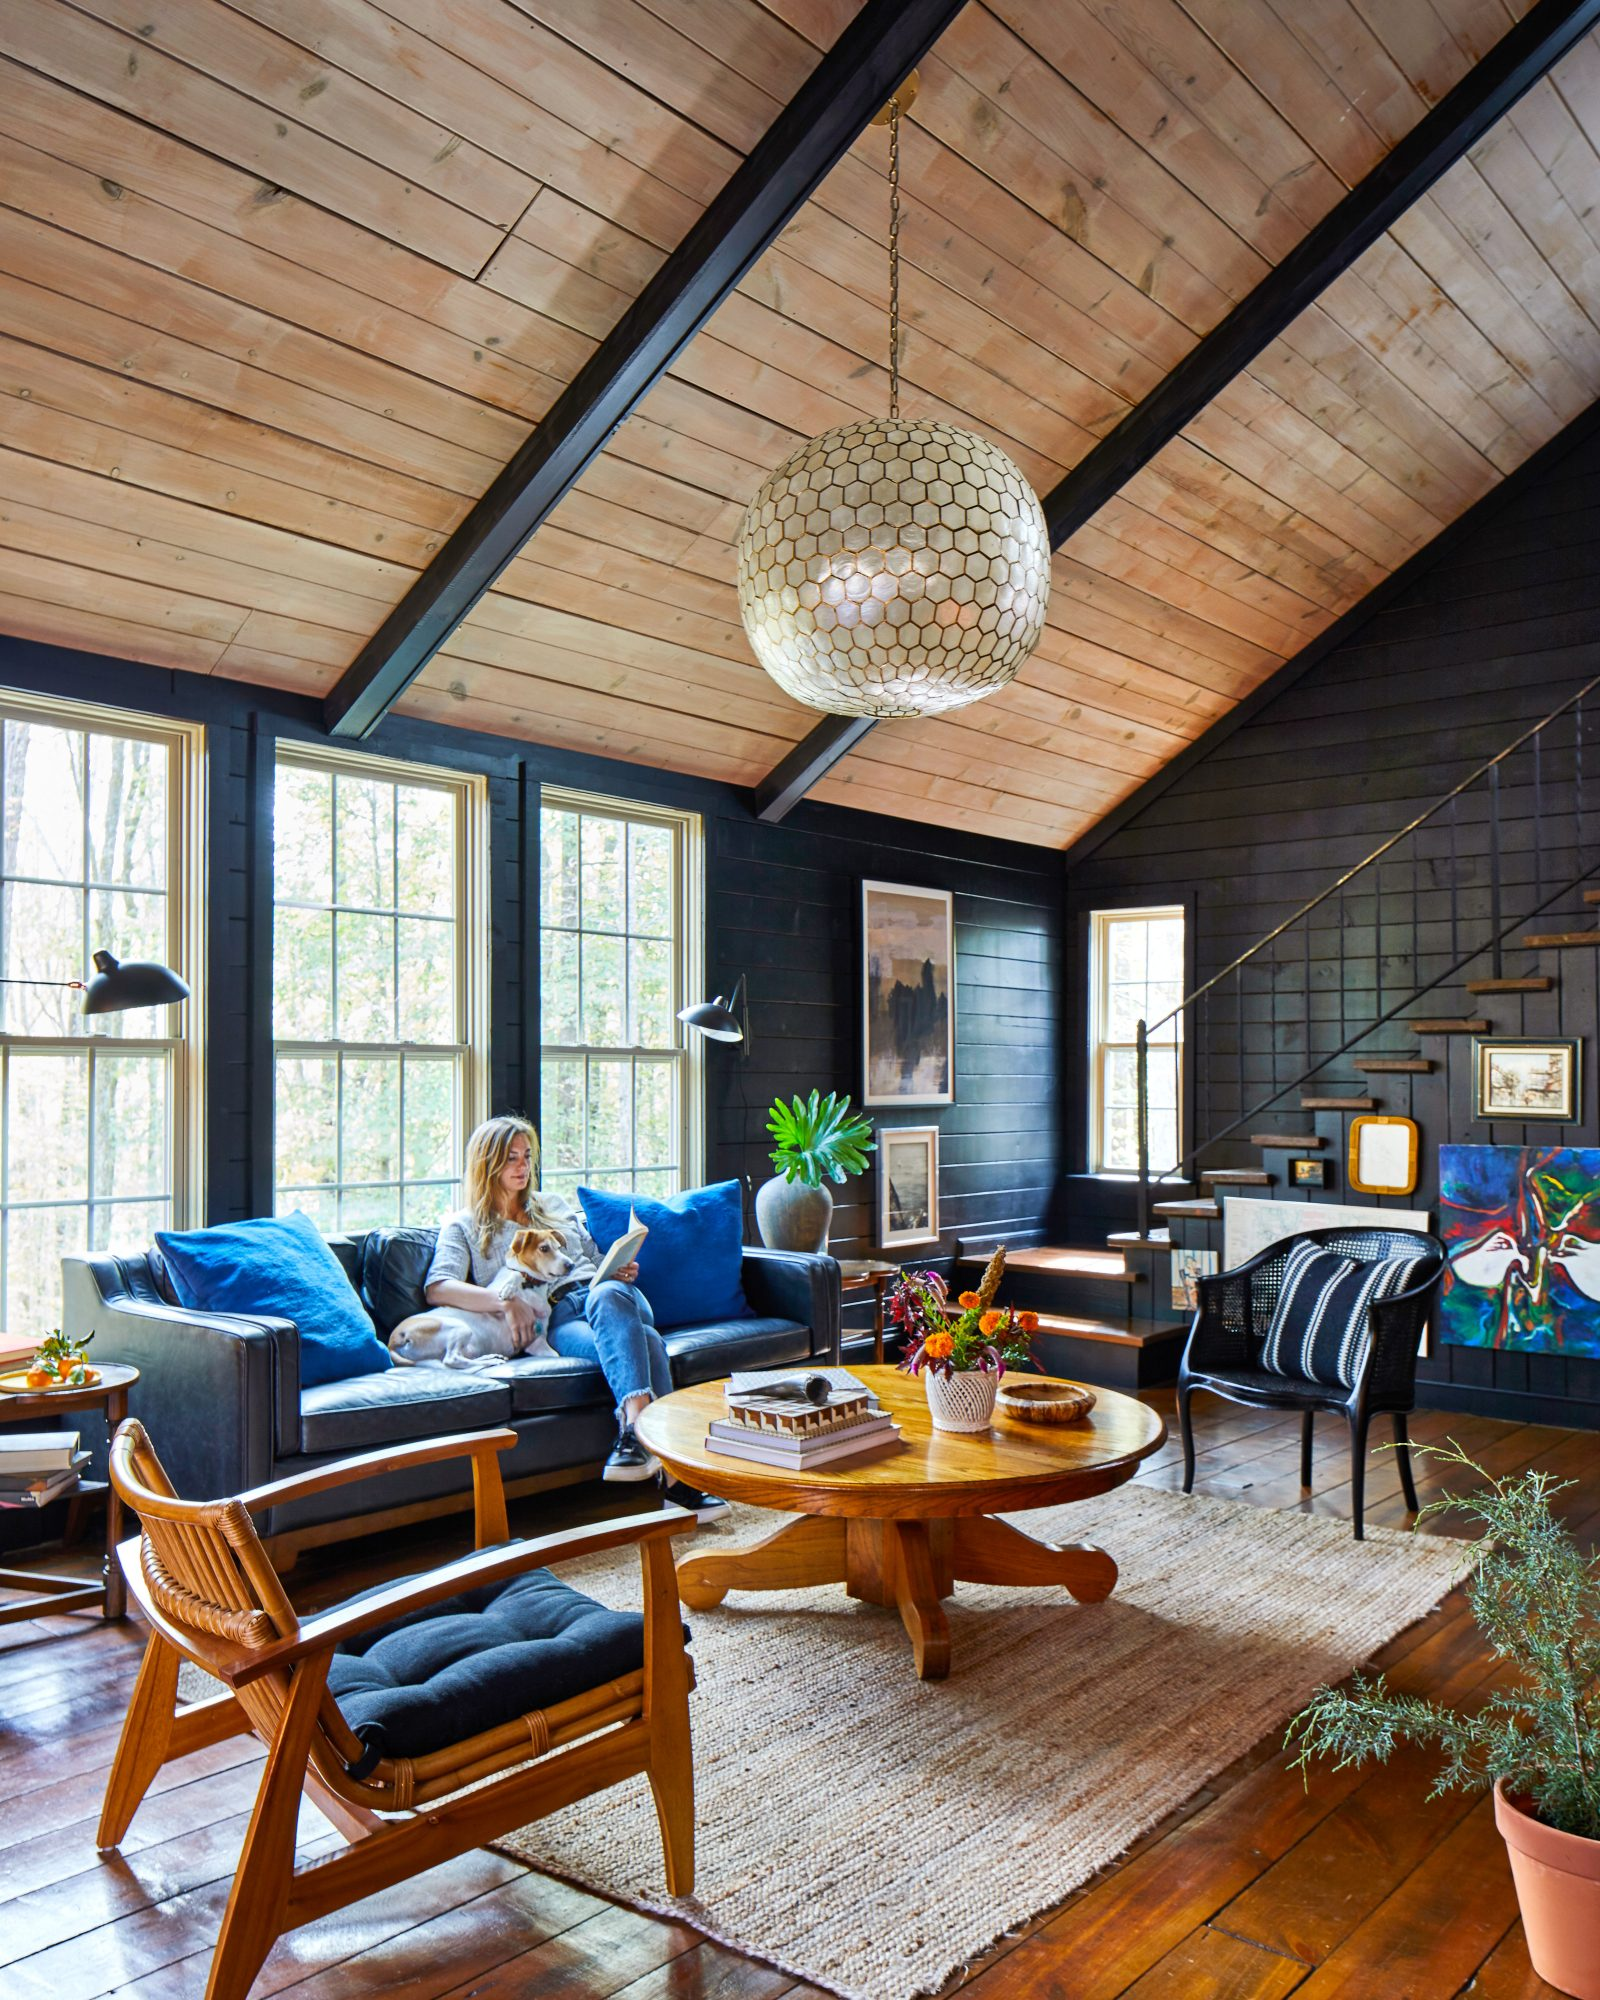 Alabama Cabin with Dark Black Walls and Natural Wood Vaulted Ceiling